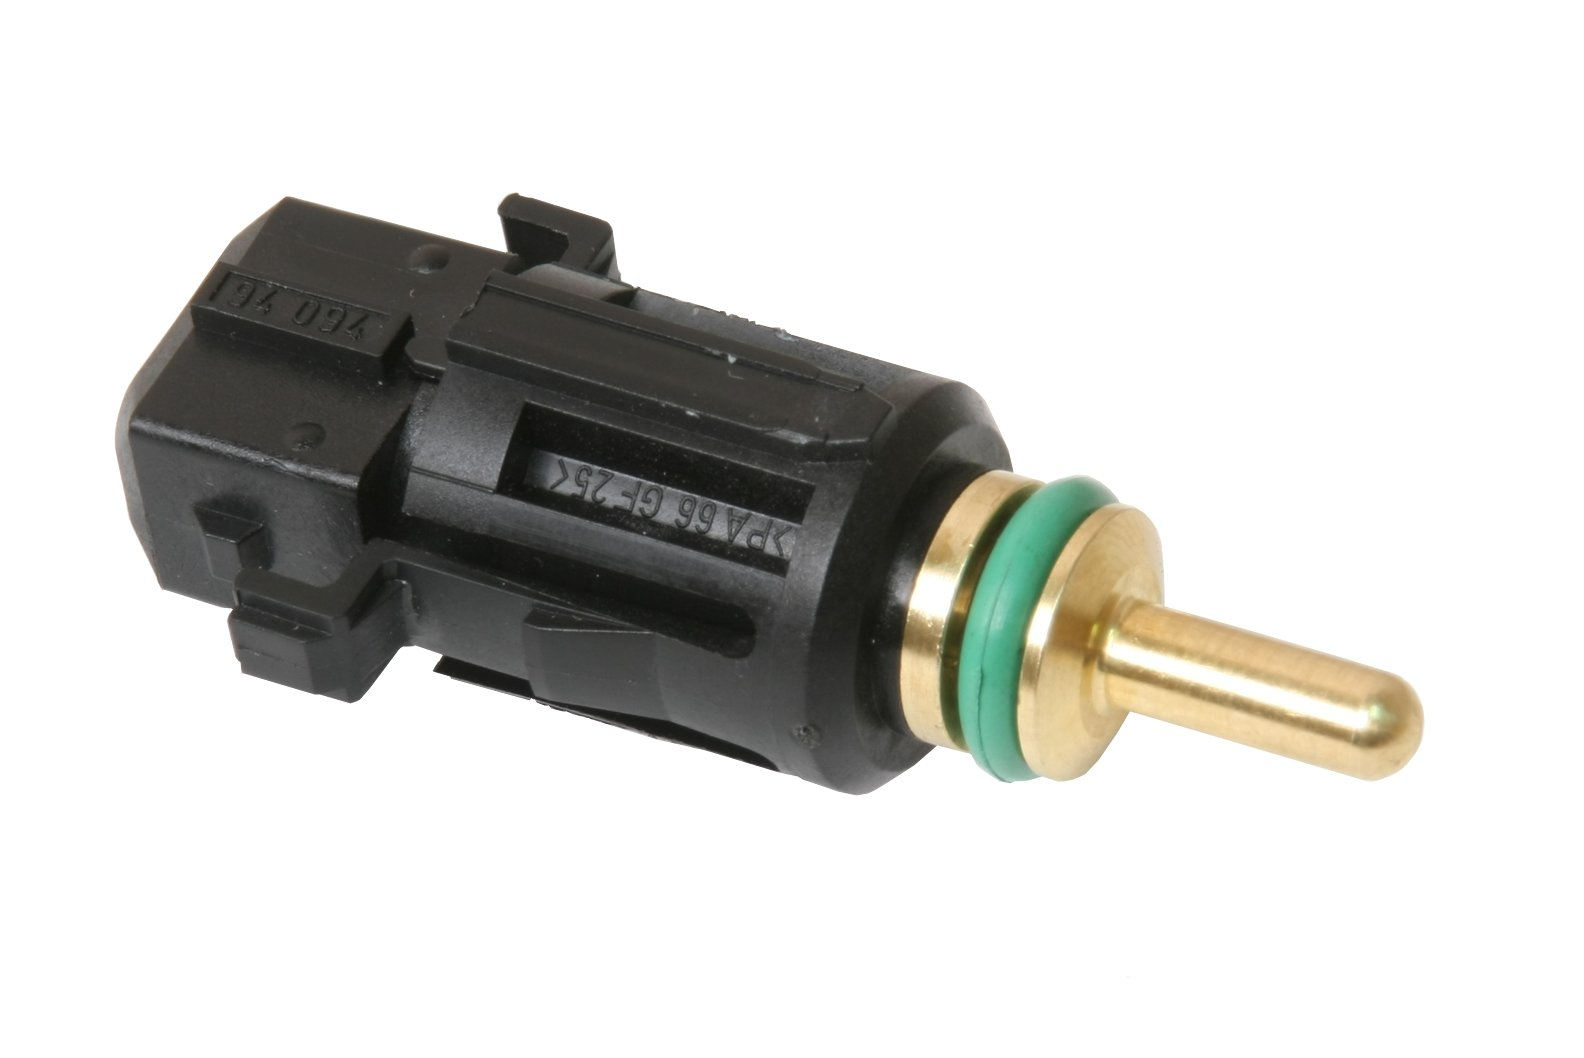 URO Parts 13 62 1 433 077 Coolant Temperature Sensor with O-Ring